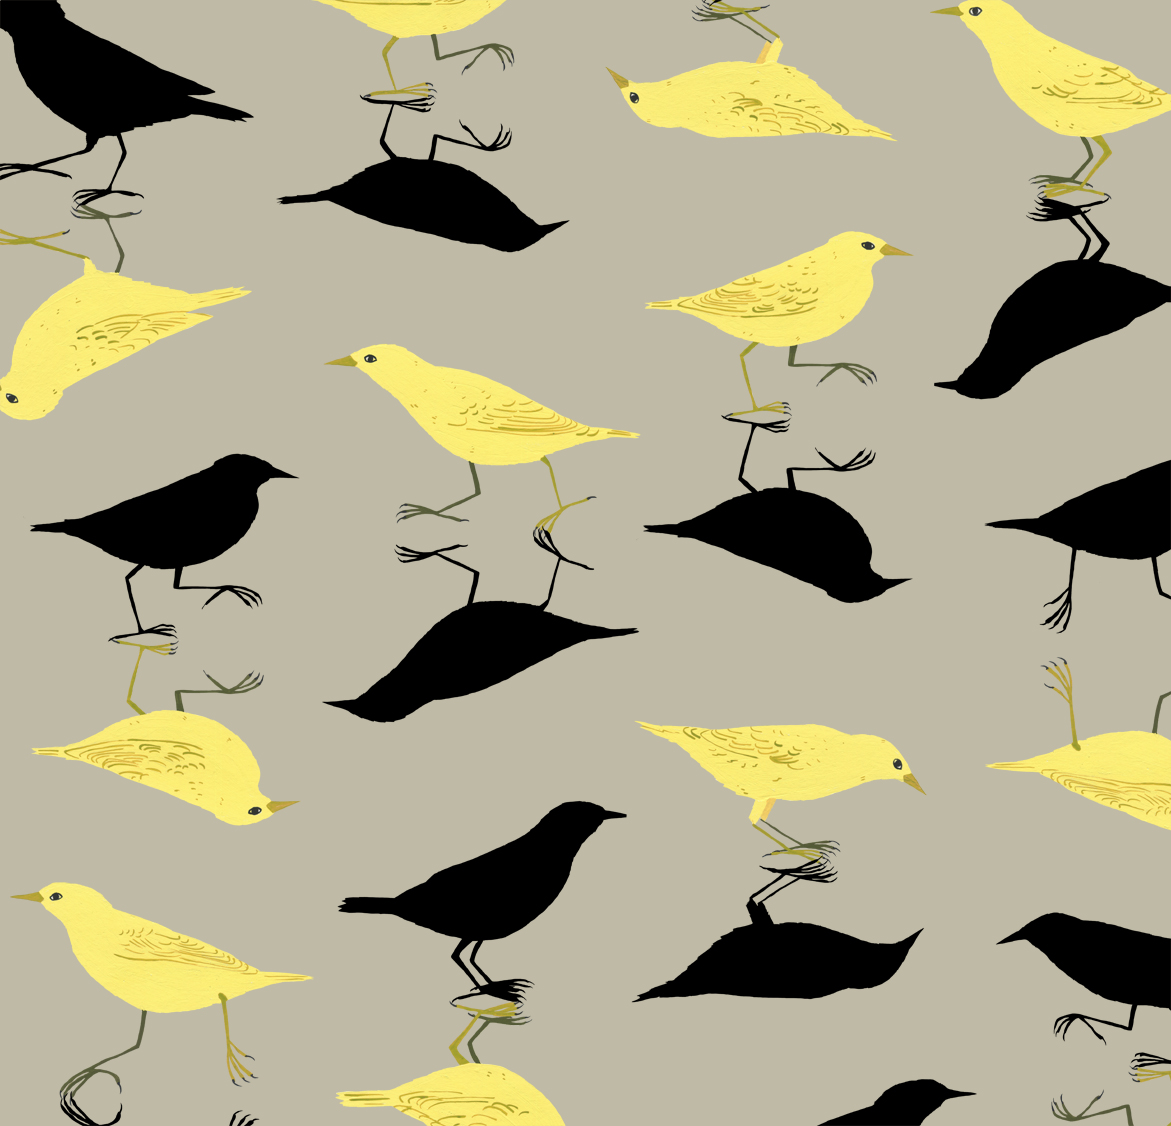 melissa boardman yellow birds shadow pattern.jpg